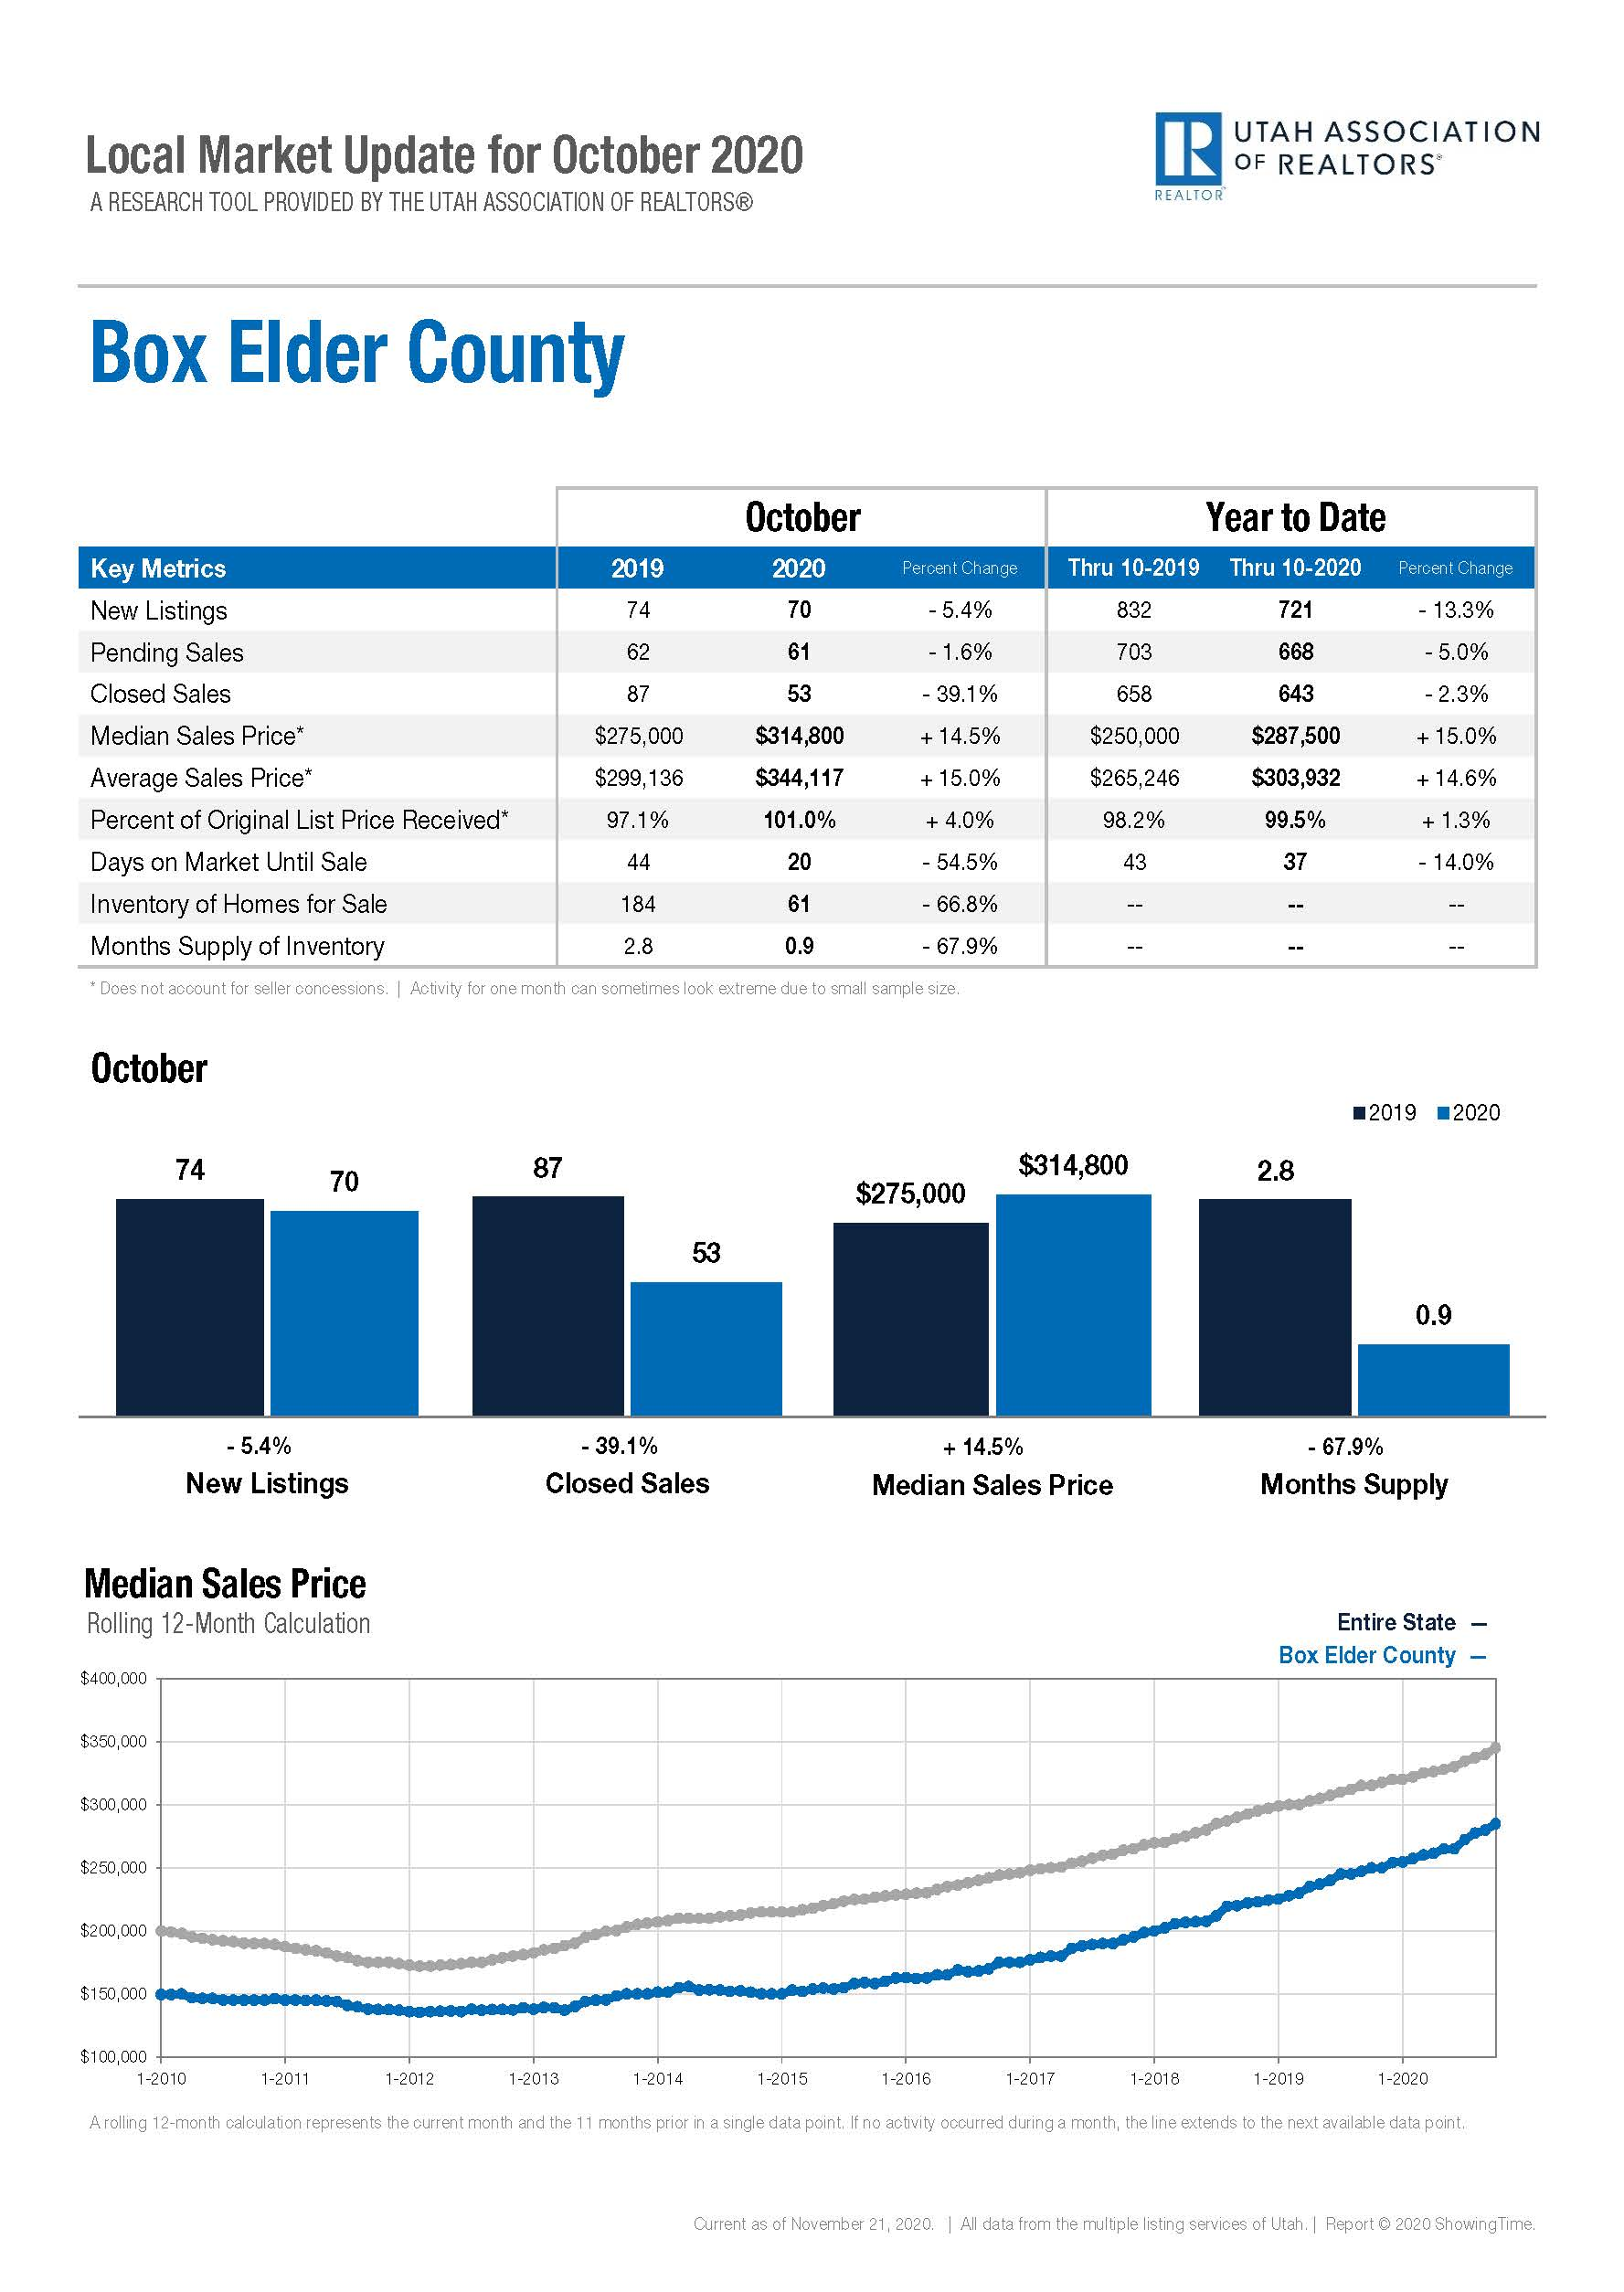 Local Marketing Update Box Elder County - October 2020